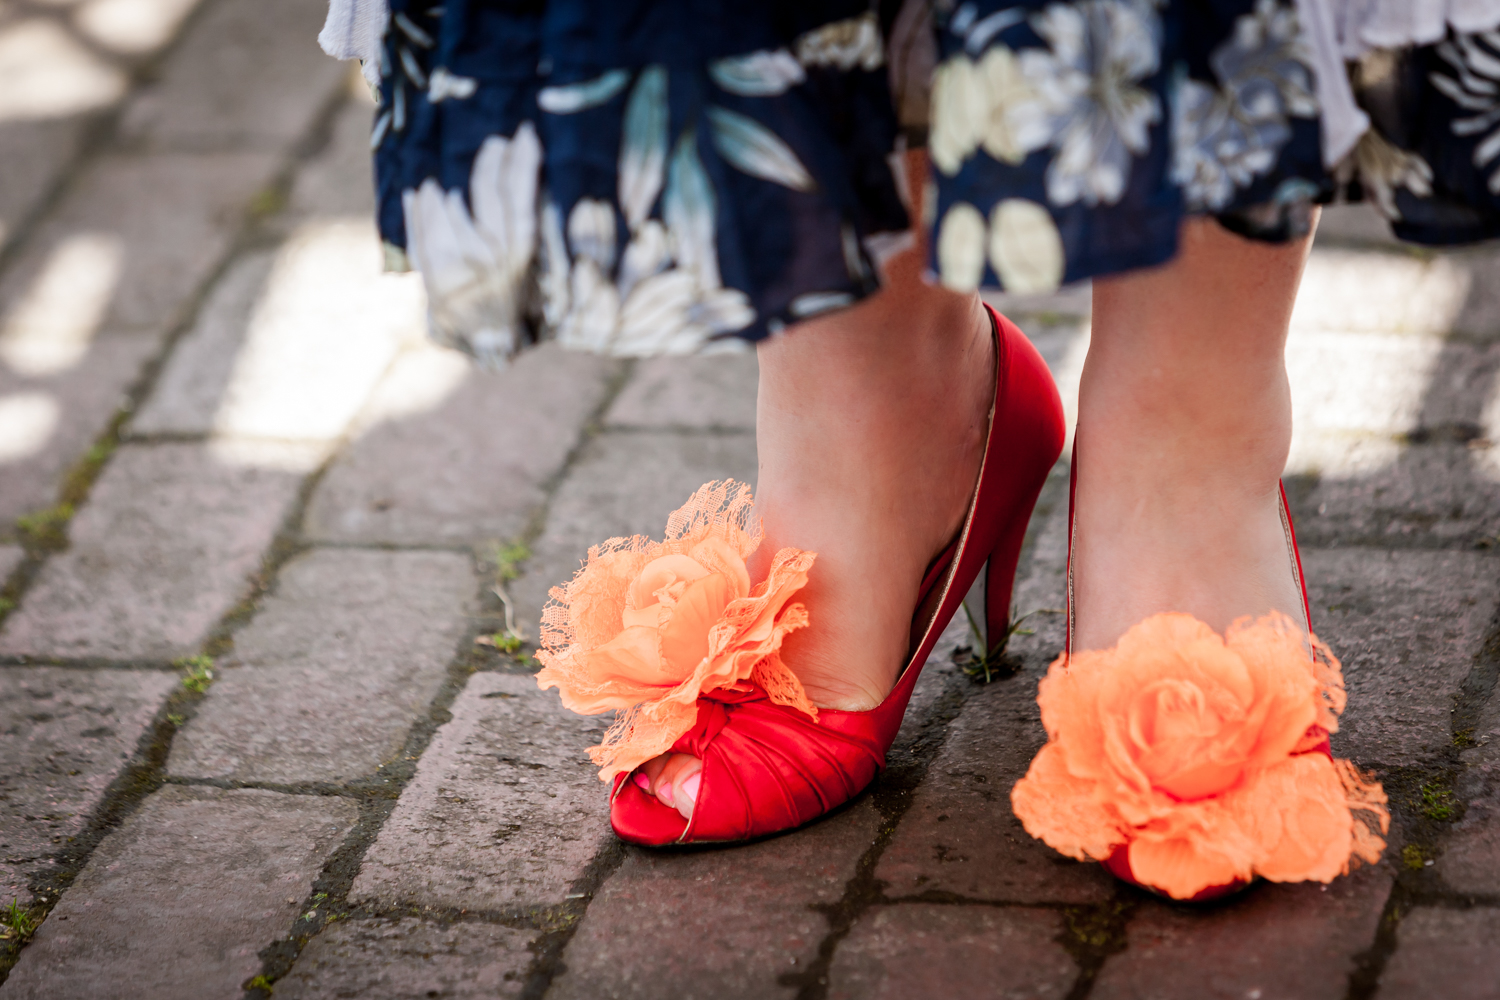 Close up on woman's feet wearing orange shoes with orange flowers